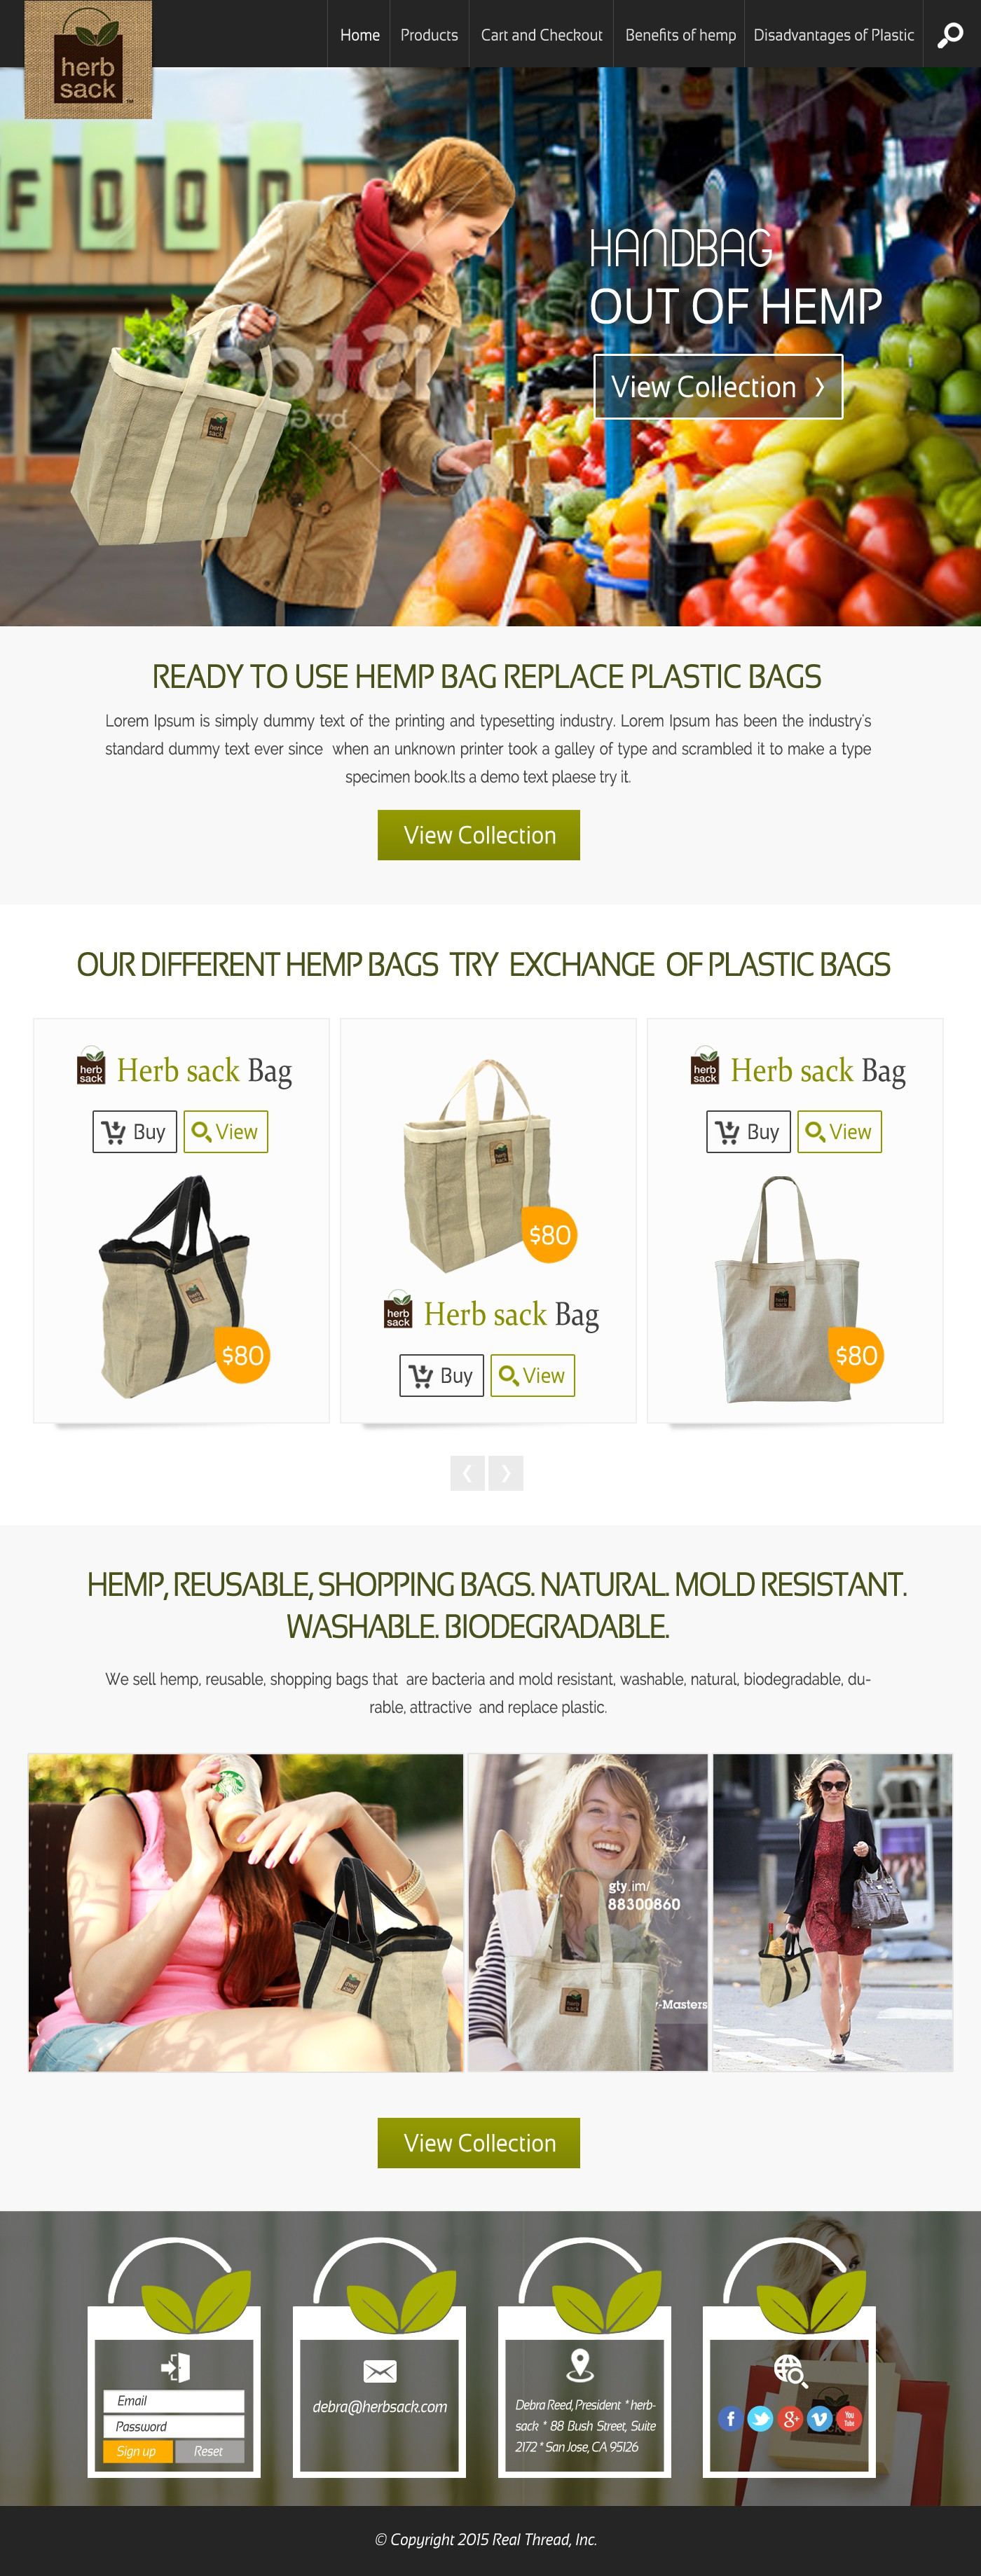 Create an awseome ecommerce site for hersack eco-bags that will appeal to women who buy natural products!